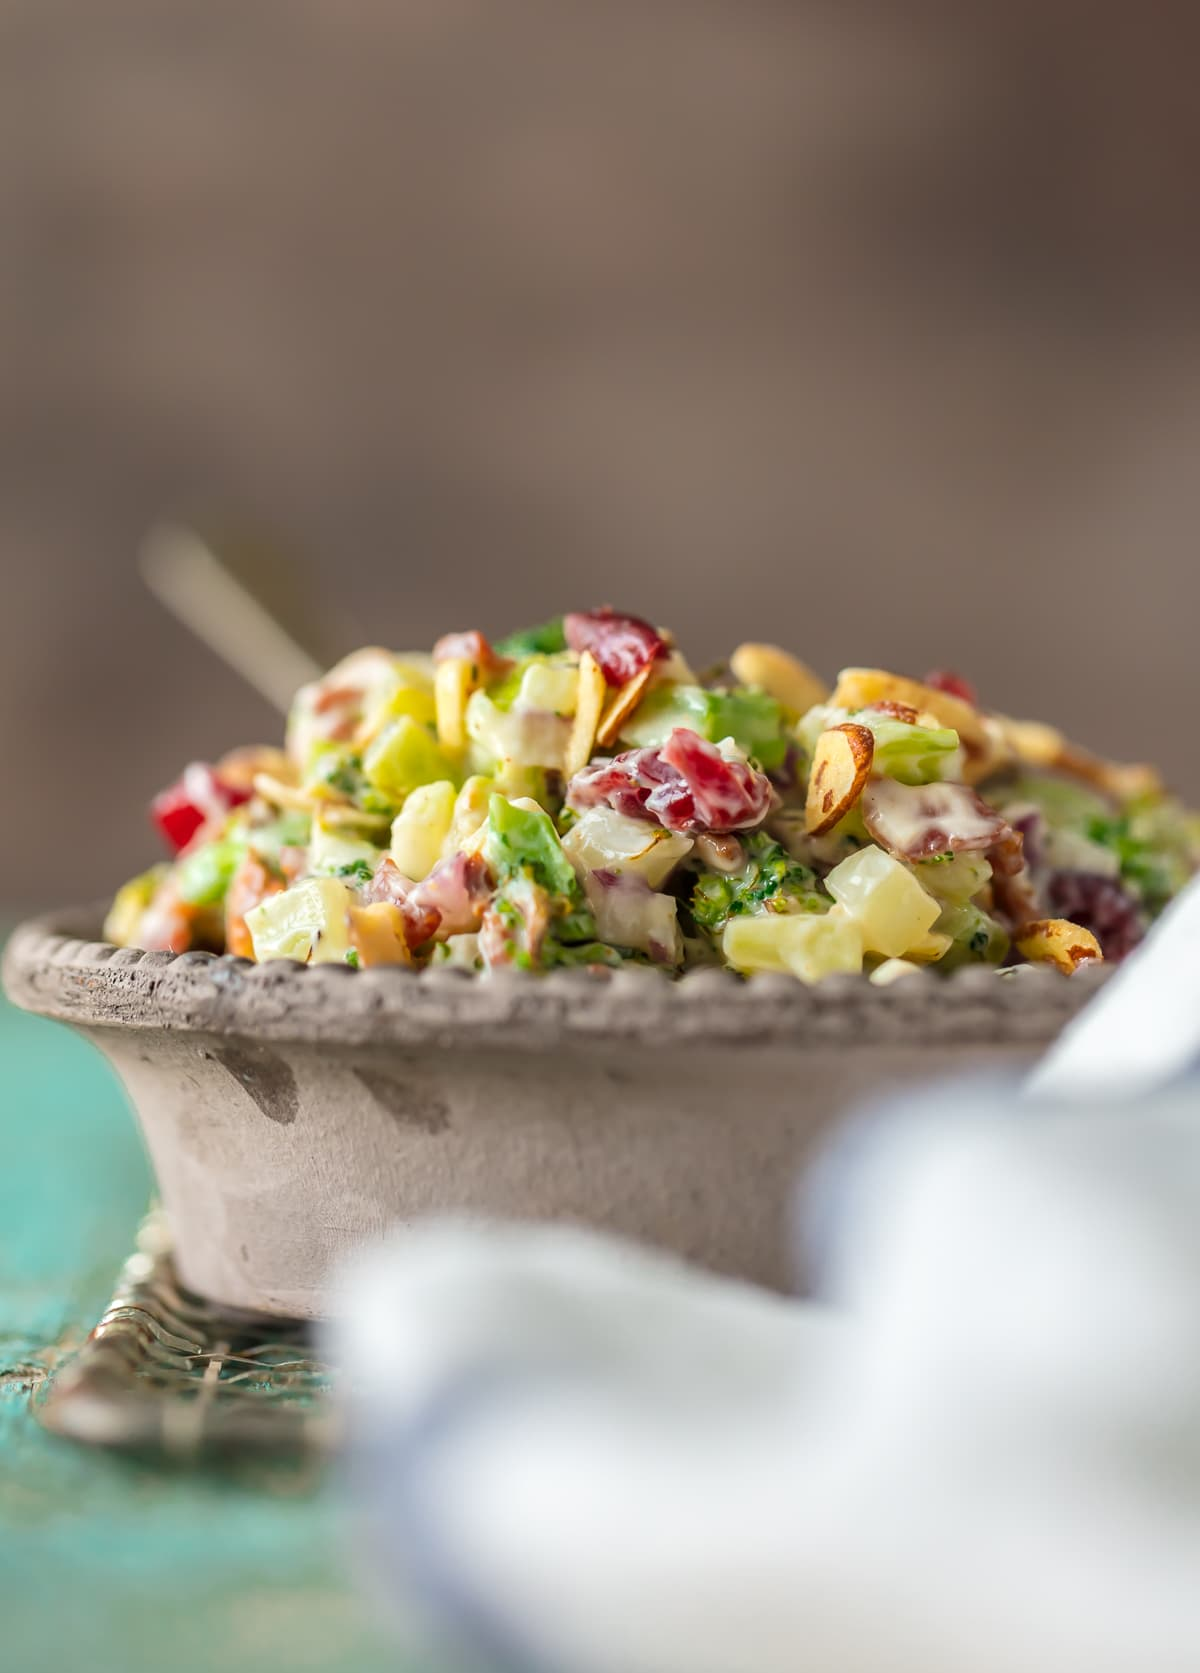 Cranberry Almond Charred Broccoli Salad with Bacon